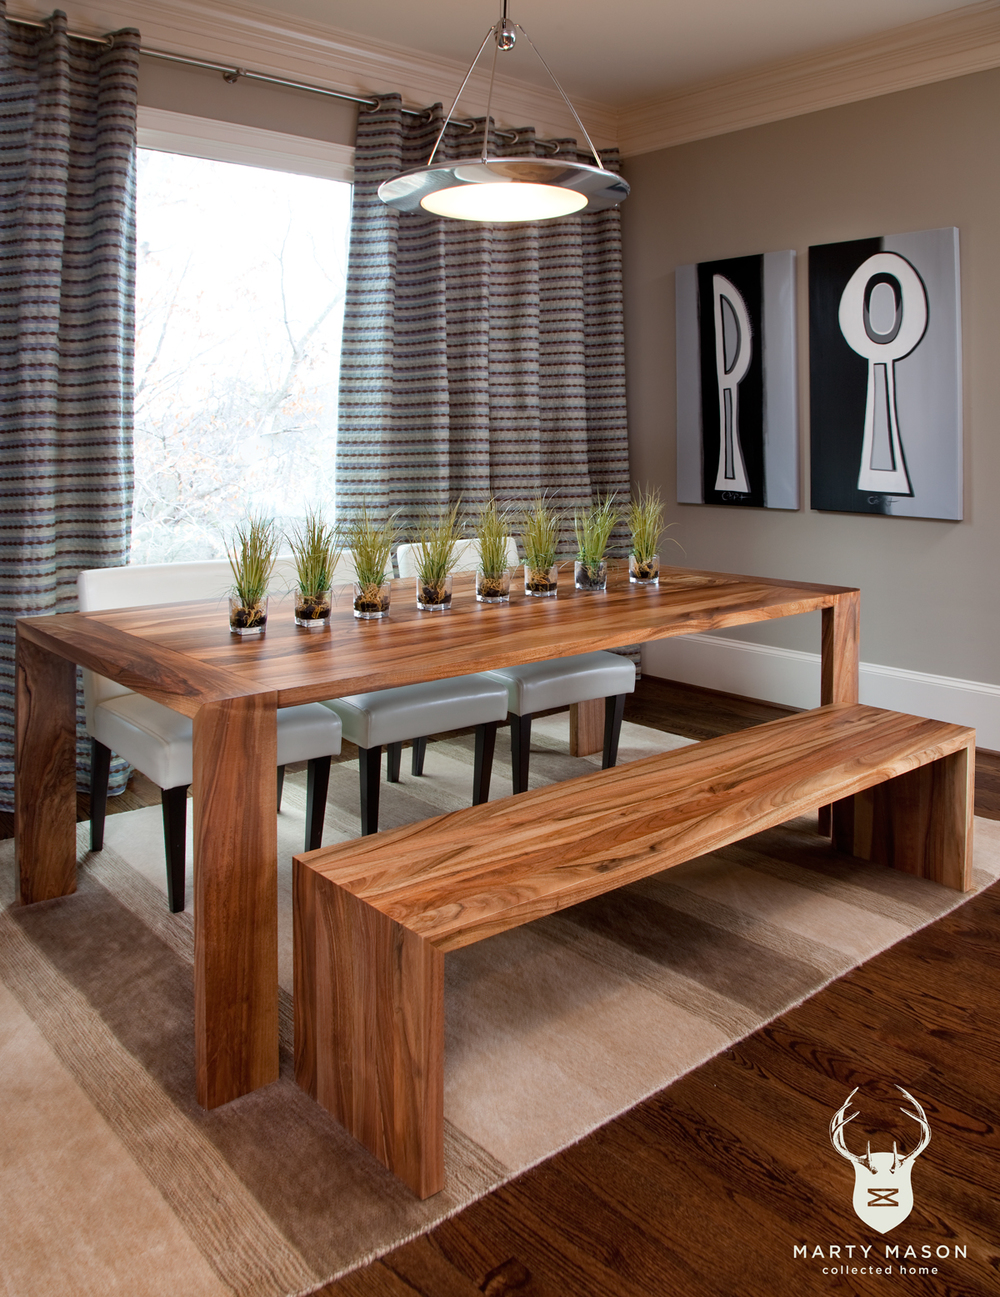 Dining Room Set Bench Seats - Grotly.com